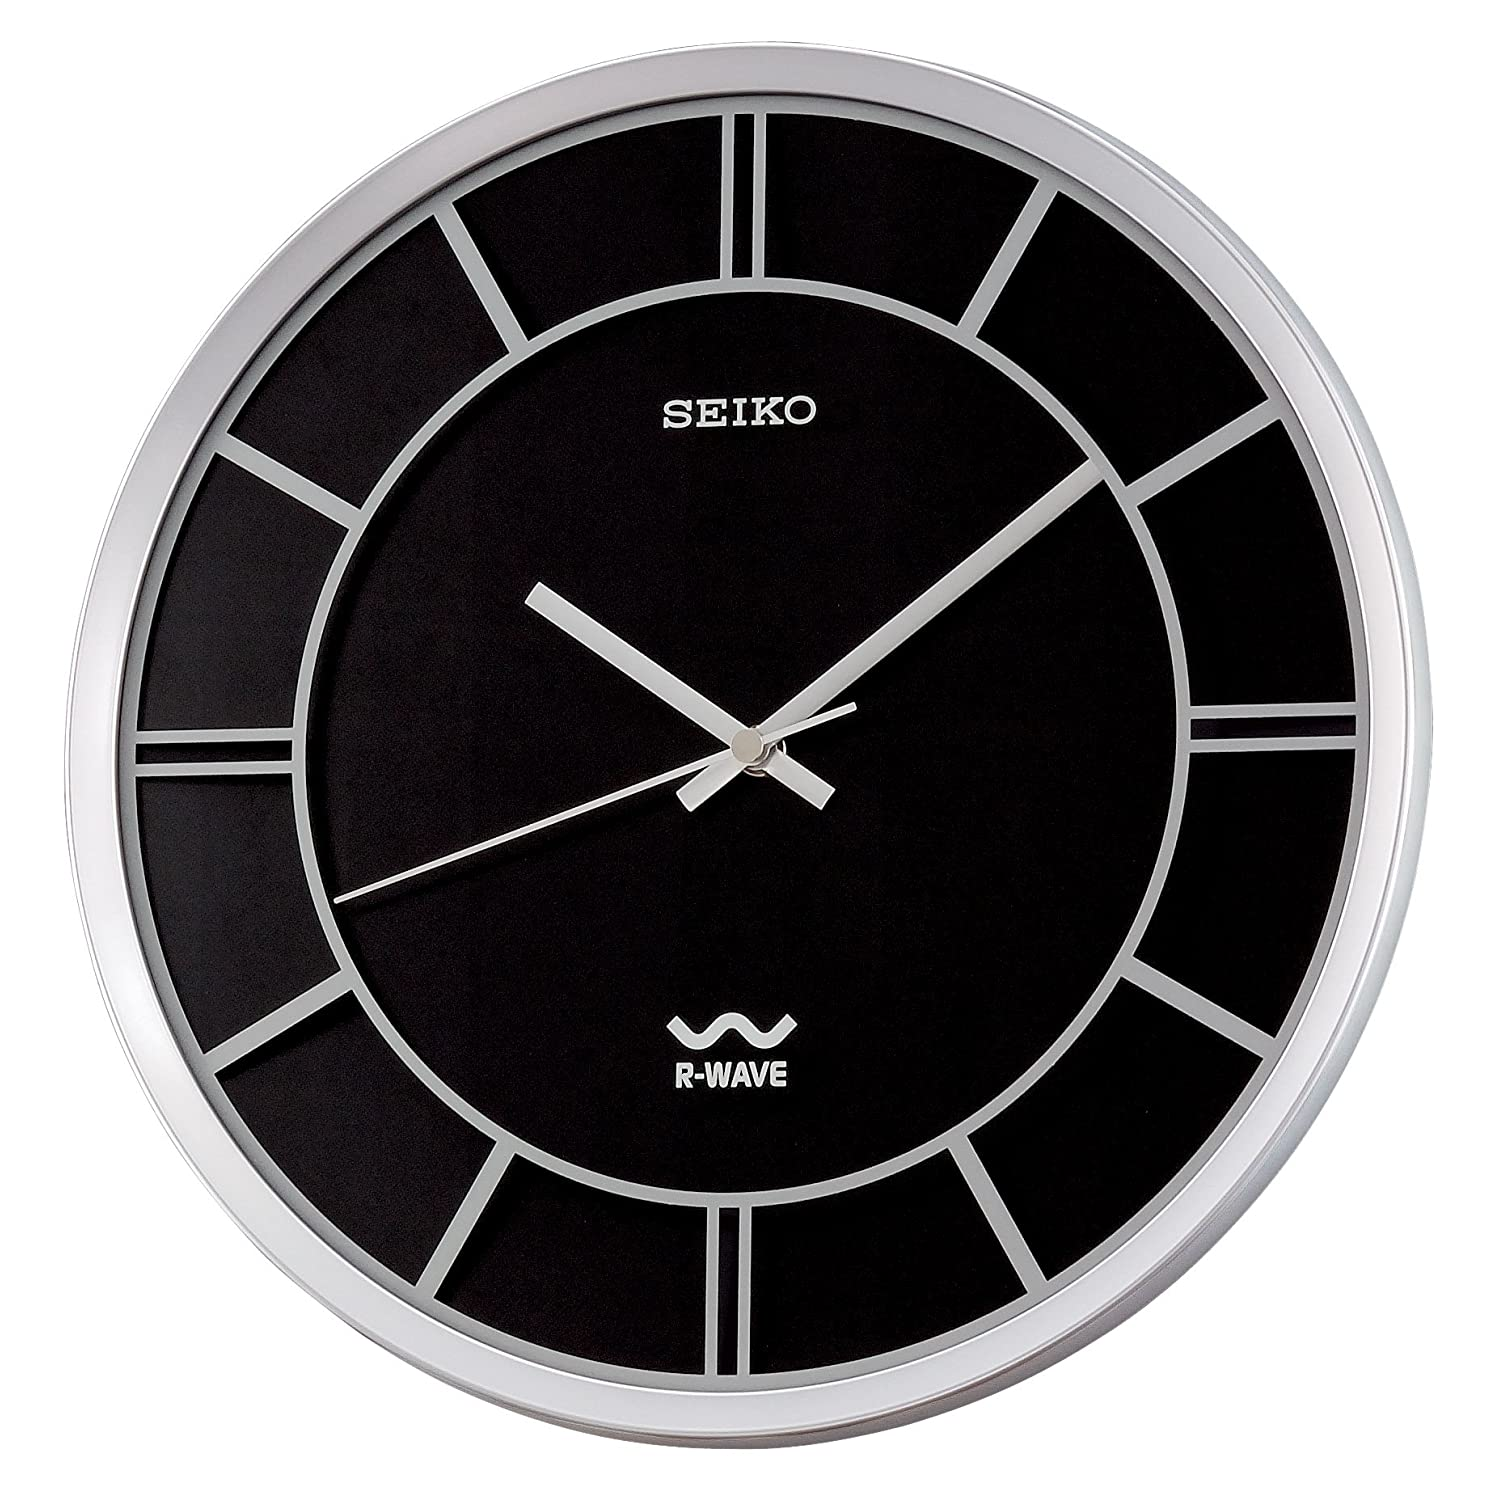 Seiko R-Wave wall clock will not reset to proper time.